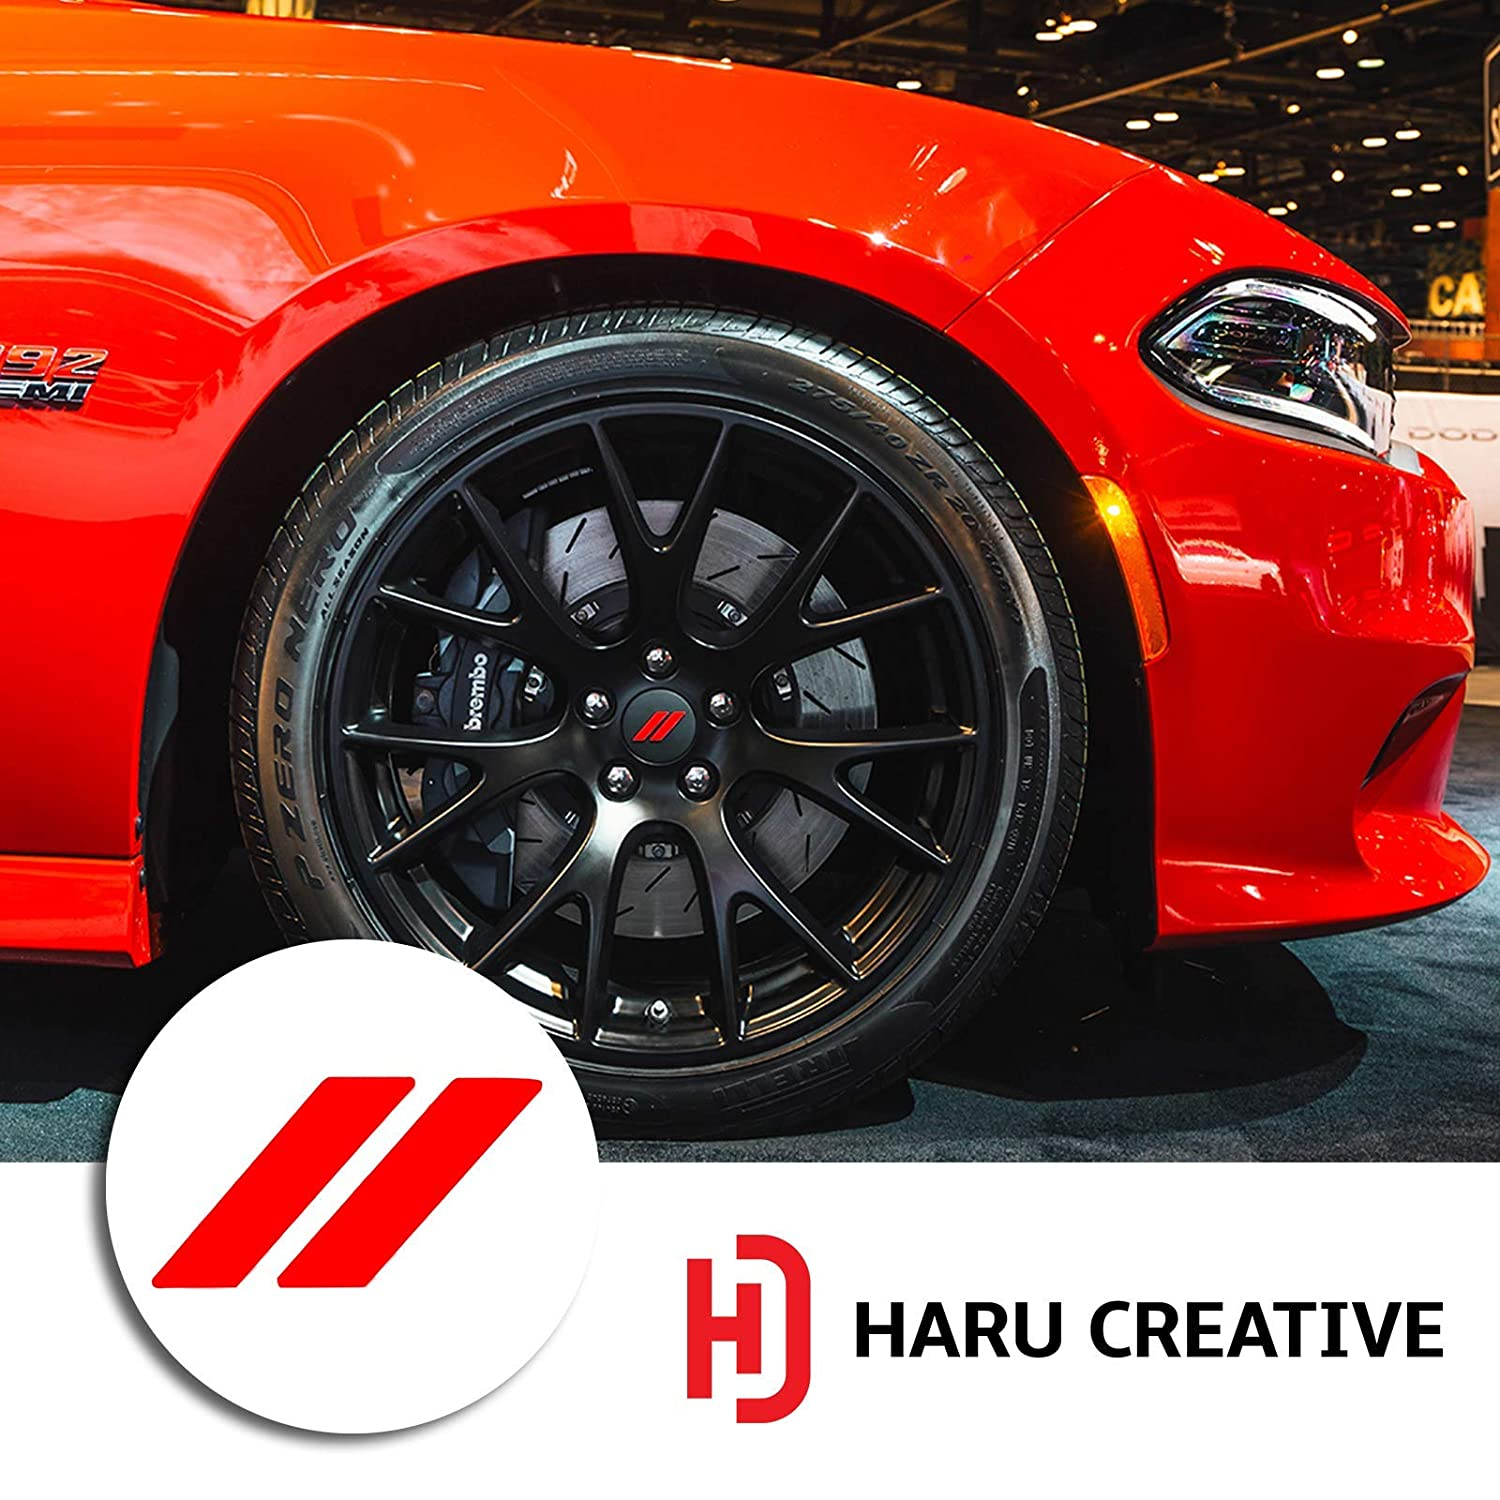 Haru Creative no Wheel caps Included Stripe Hash Rhombus Wheel Center Cap Overlay Vinyl Decal Sticker Fits Dodge Charger and Challenger 2017 2018 - Metallic Matte Chrome Red